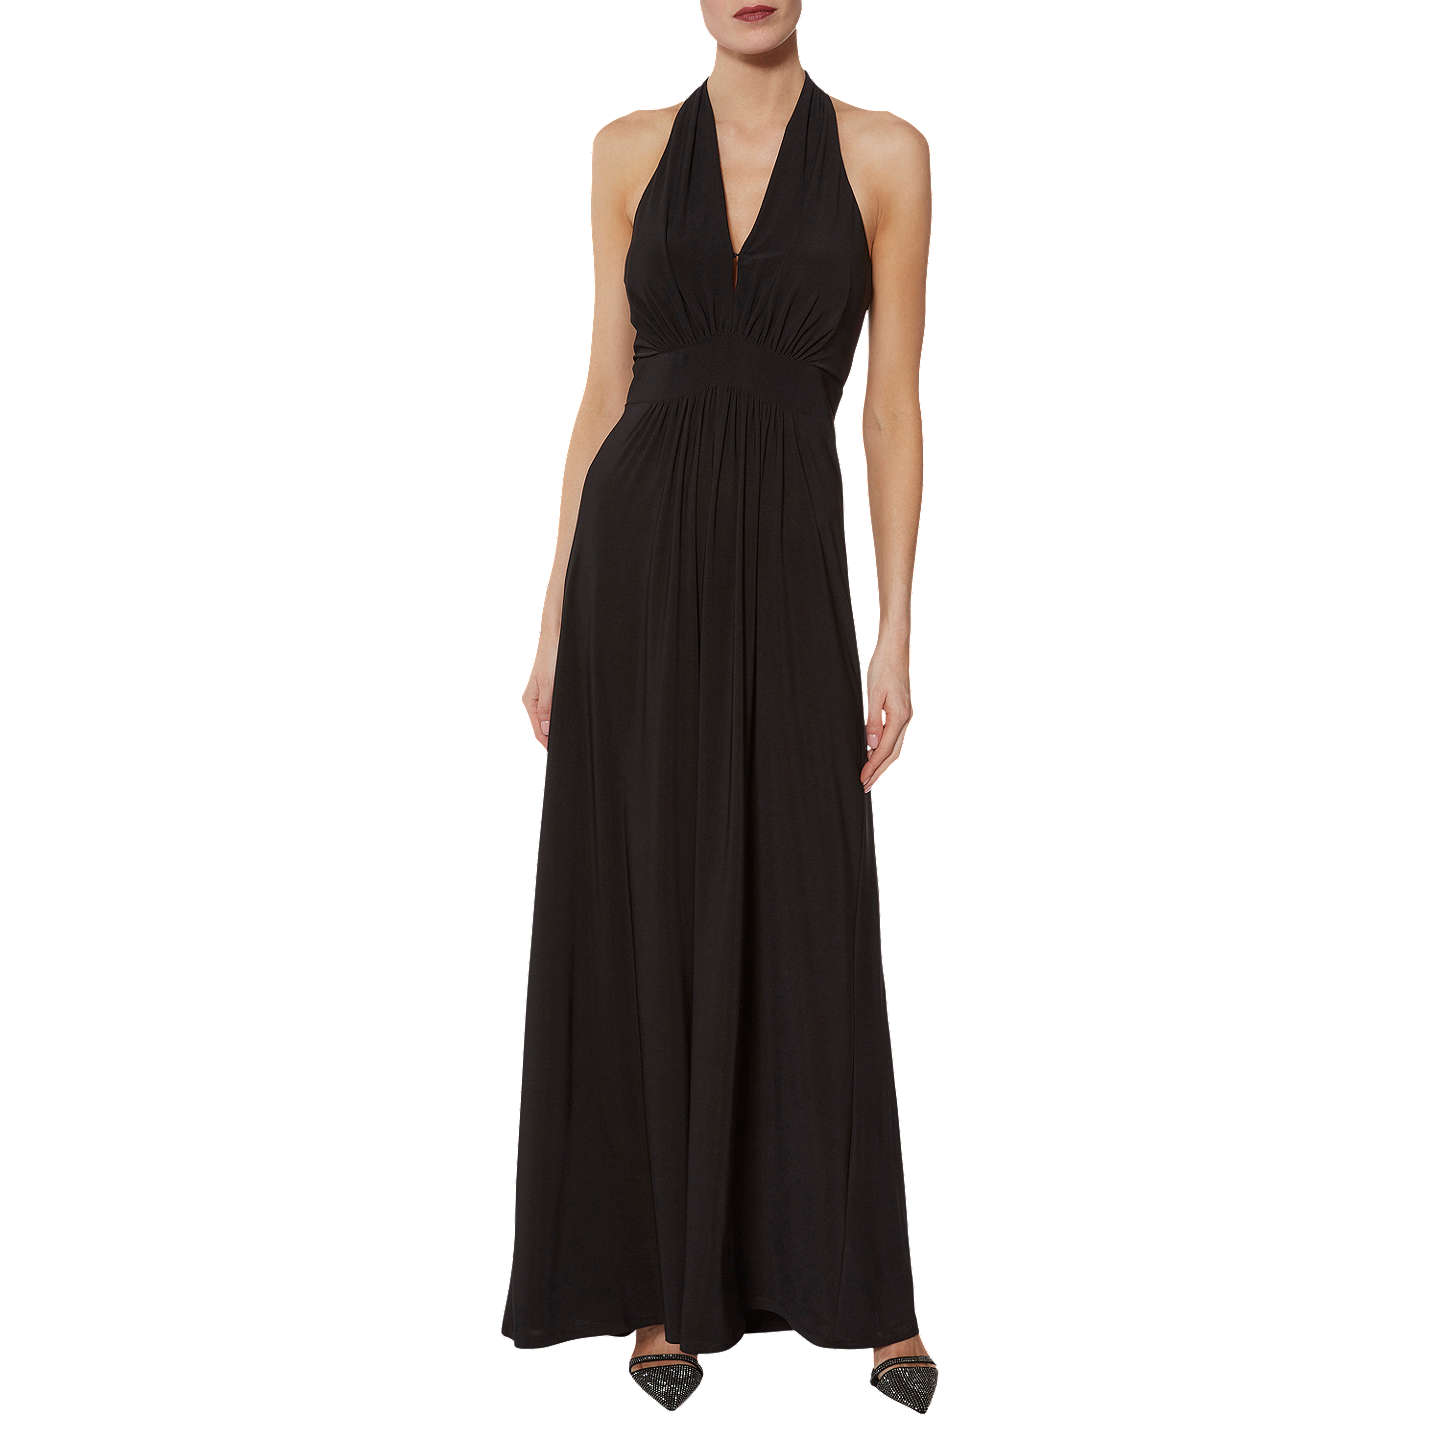 Gina Bacconi Serena Halterneck Dress, Black by Gina Bacconi